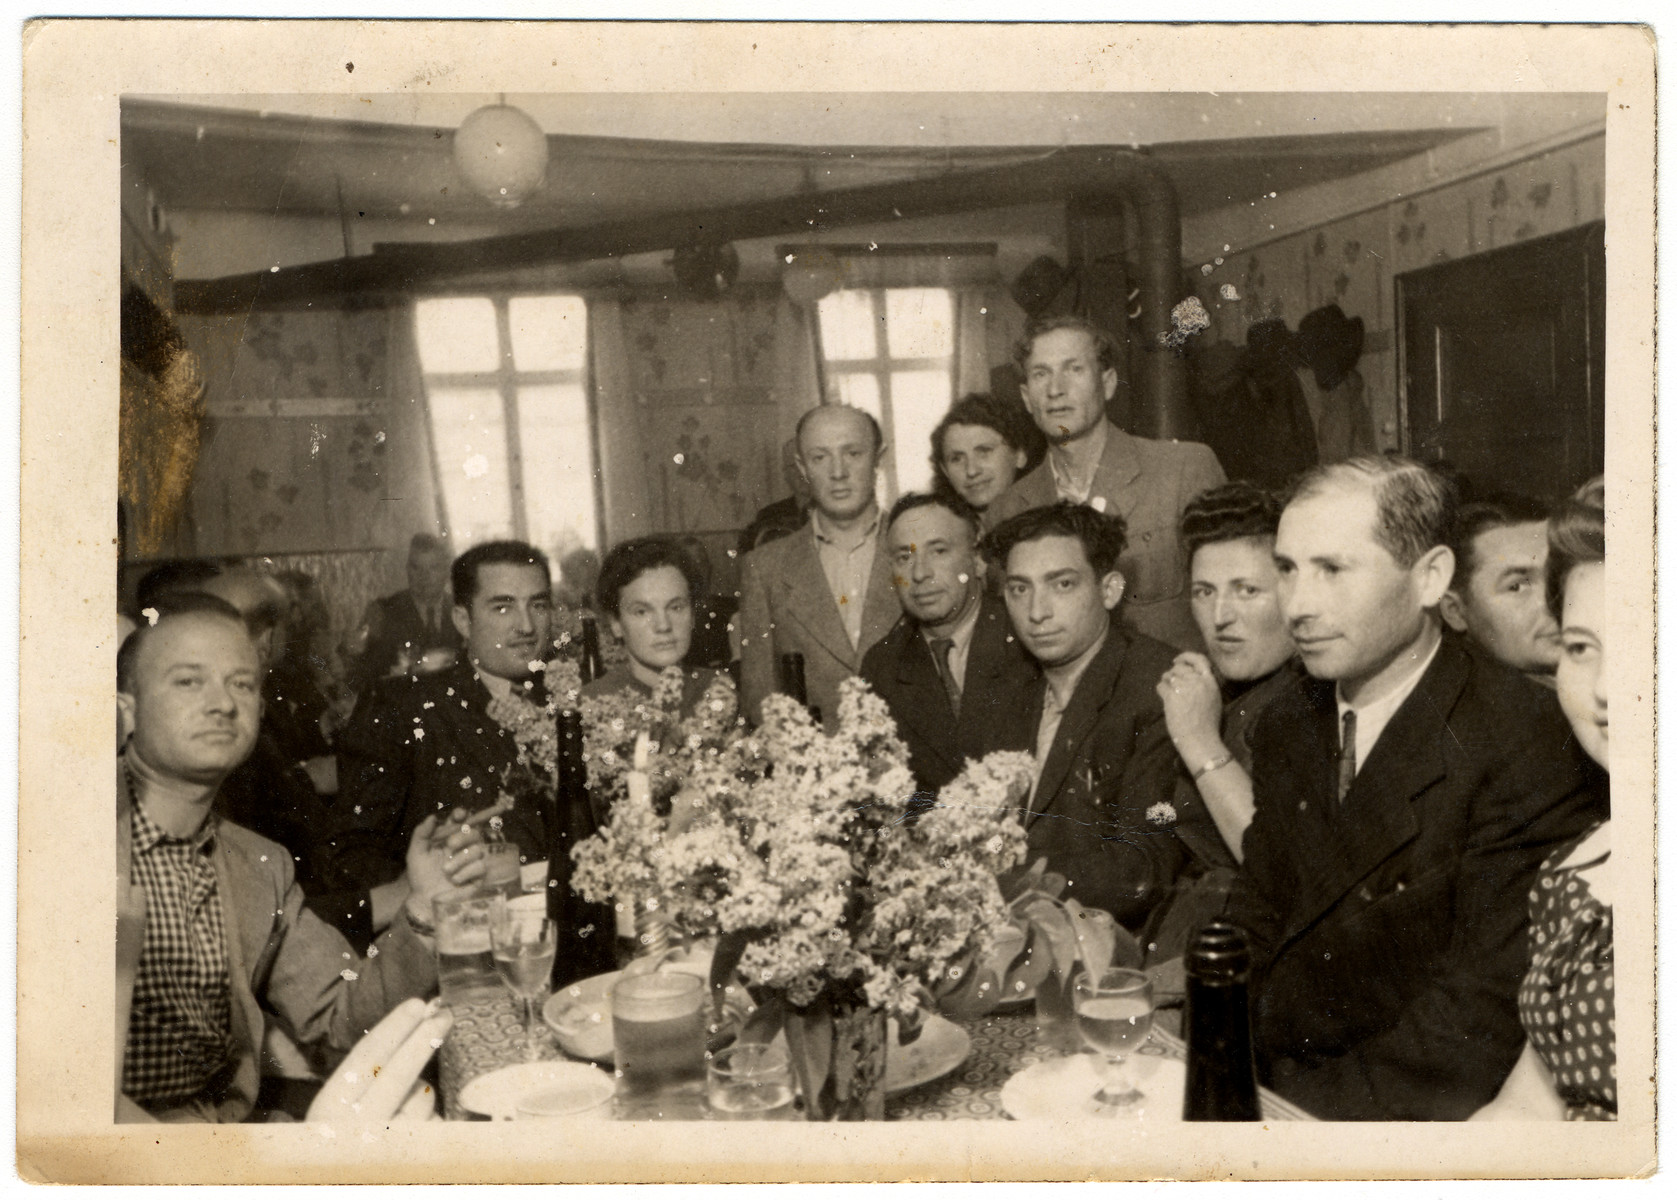 A group of displaced persons sits around a table in Zeilsheim following  a memorial service for victims of the Holocaust.  Roman Bol is pictured, standing in the back, on the right.  The man pictured second from the left has been identified as Leon Greenberg (later Green) of Gabin, Poland.